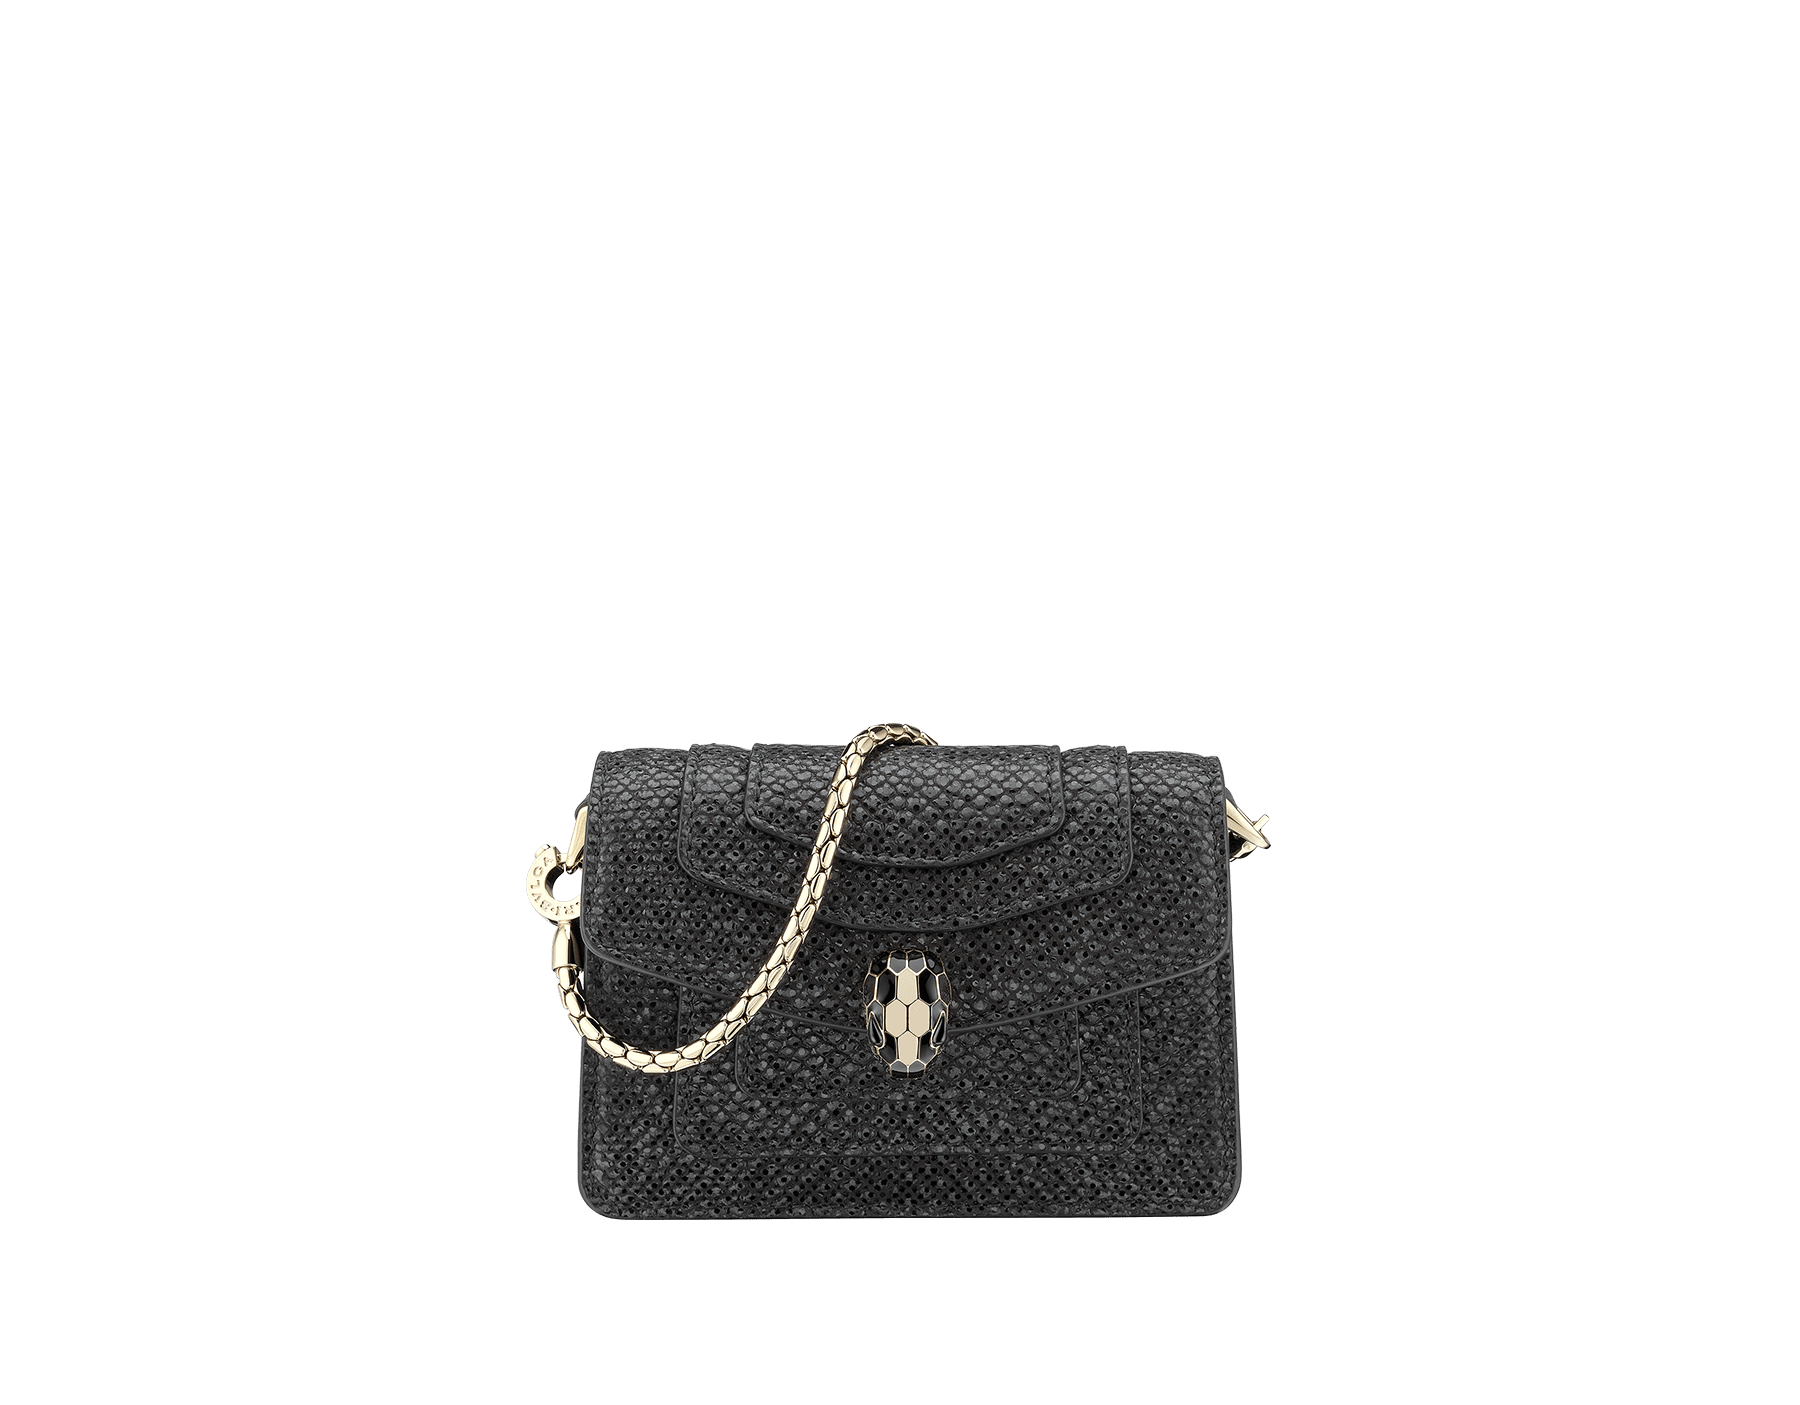 """""""Serpenti Forever"""" miniature bag charm in mint metallic karung skin and black calf leather. Iconic brass light gold plated snakehead stud closure enamelled in black and white and finished with black enamel eyes. SERP-BAG-CHARM-MK image 1"""